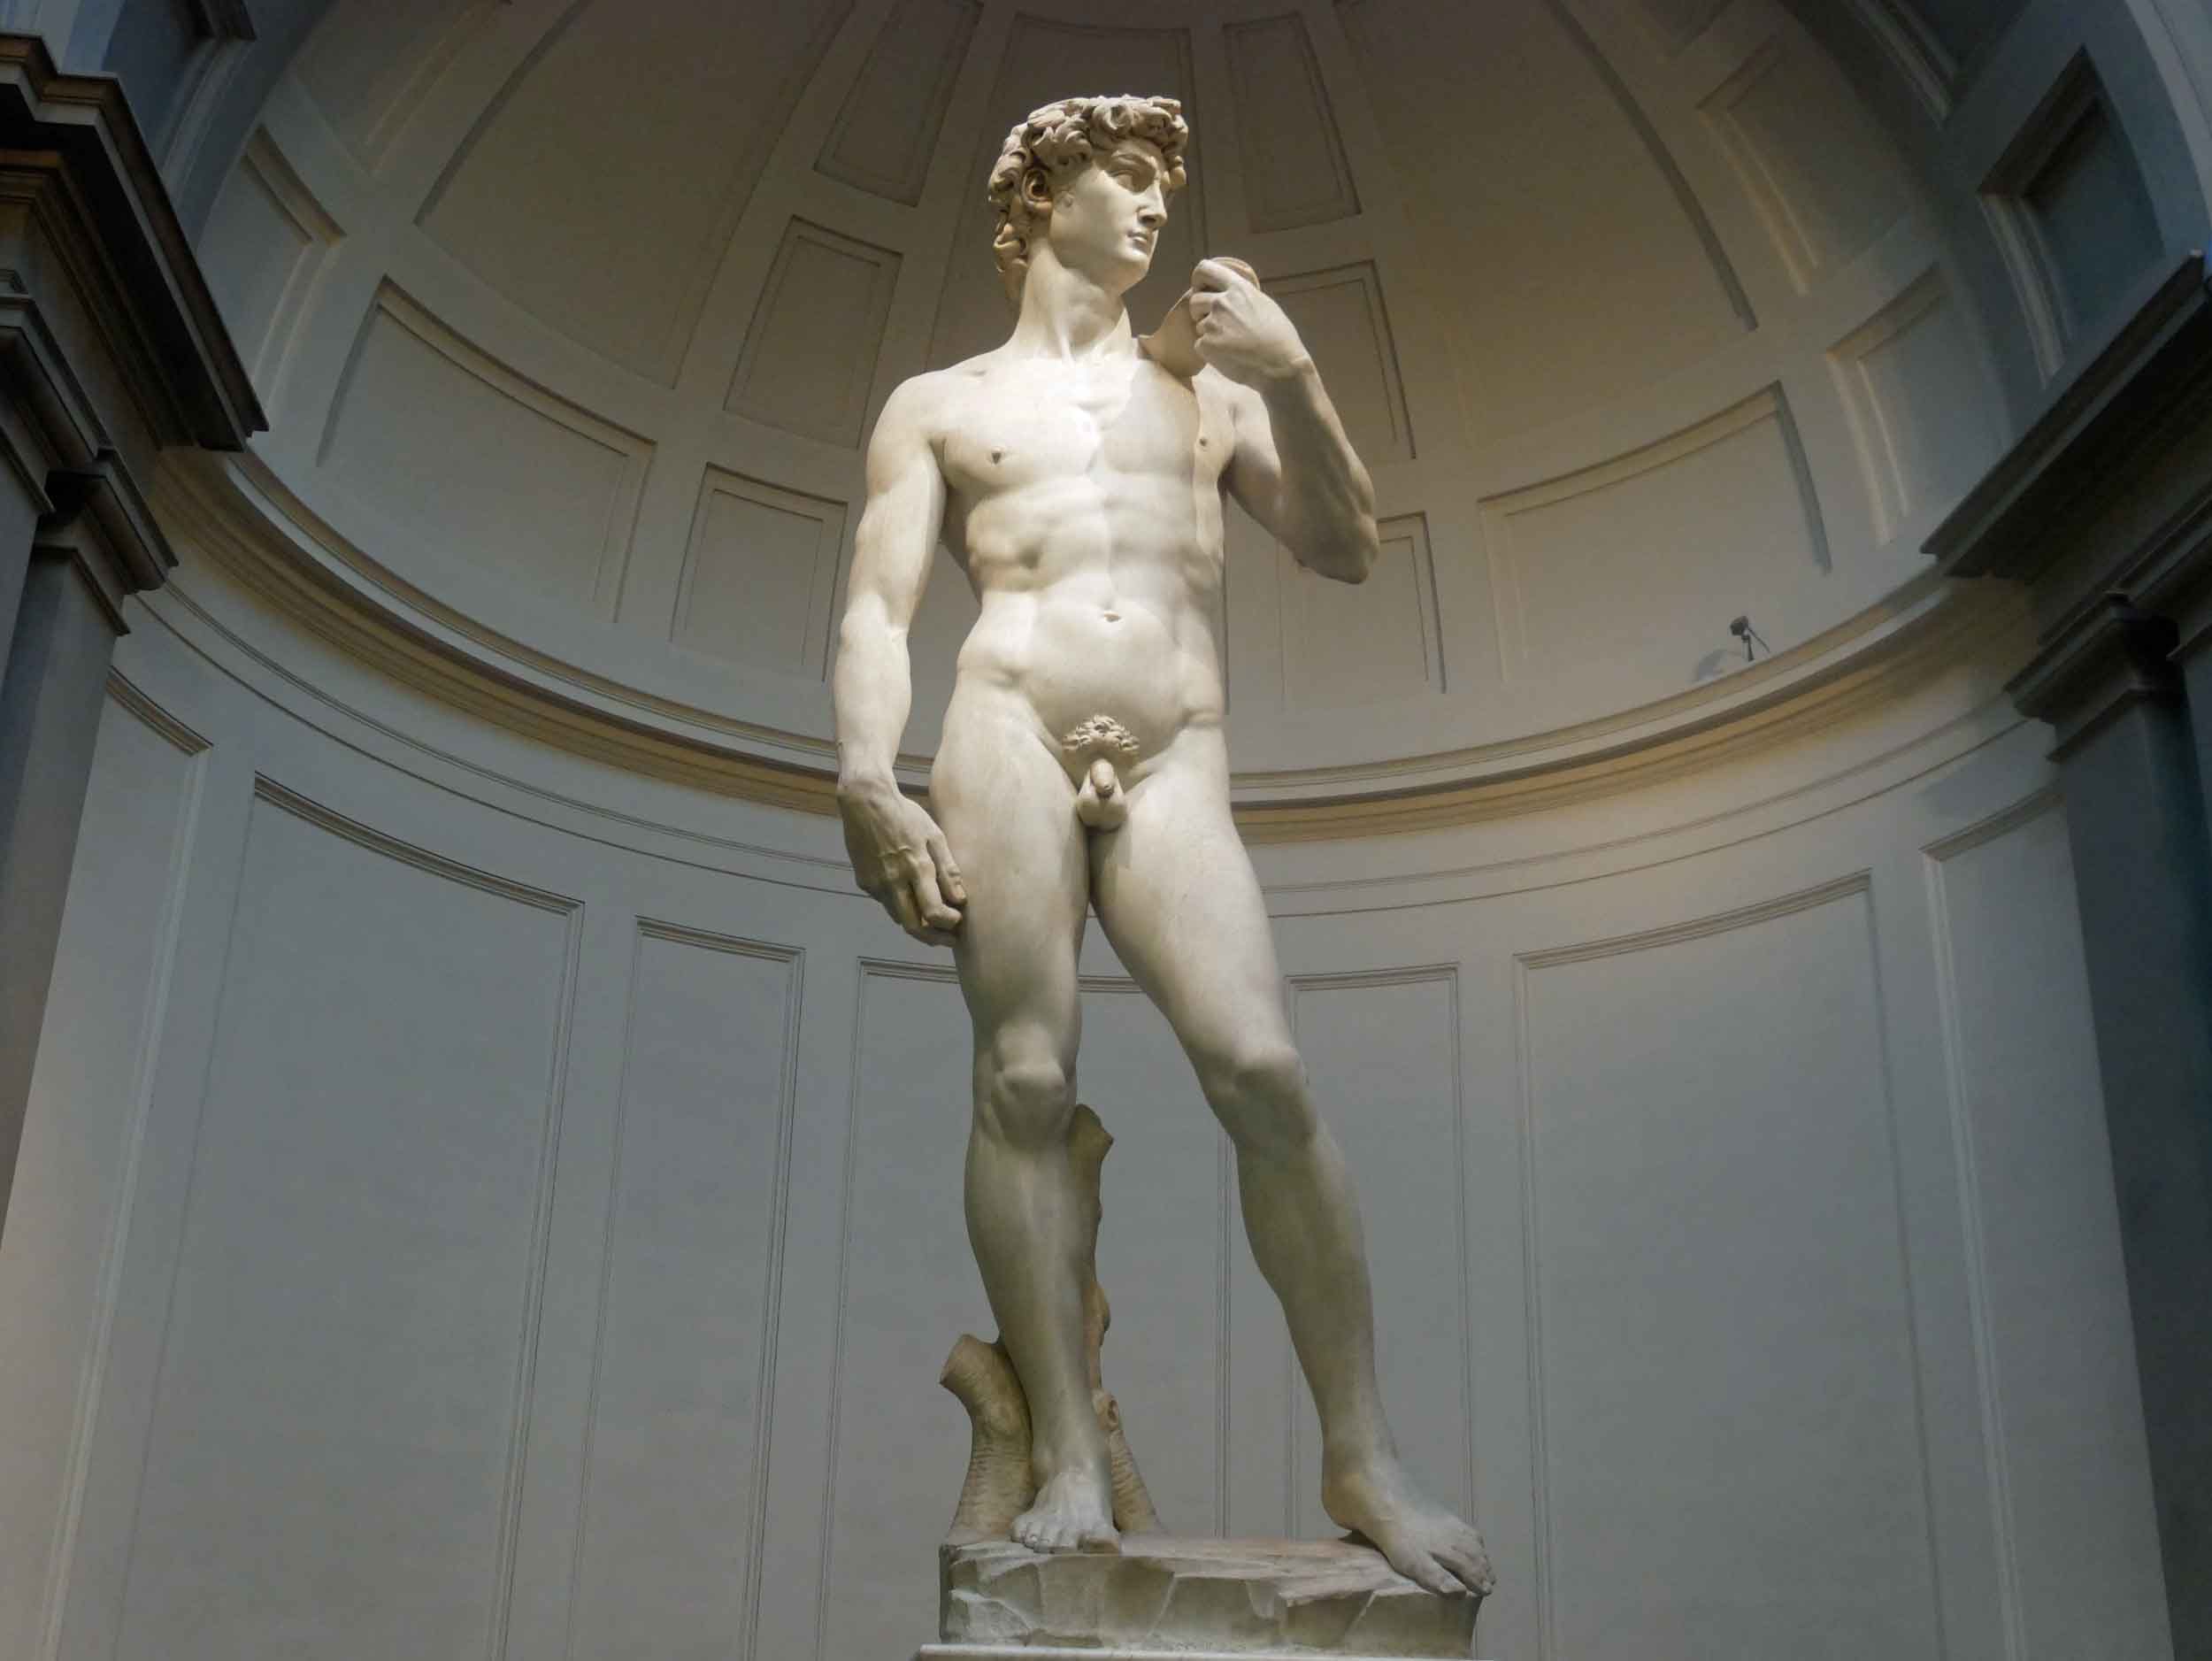 And finally, the pièce de résistance, the striking statue of  David.  We began and ended our Italian journey with Michelangelo.